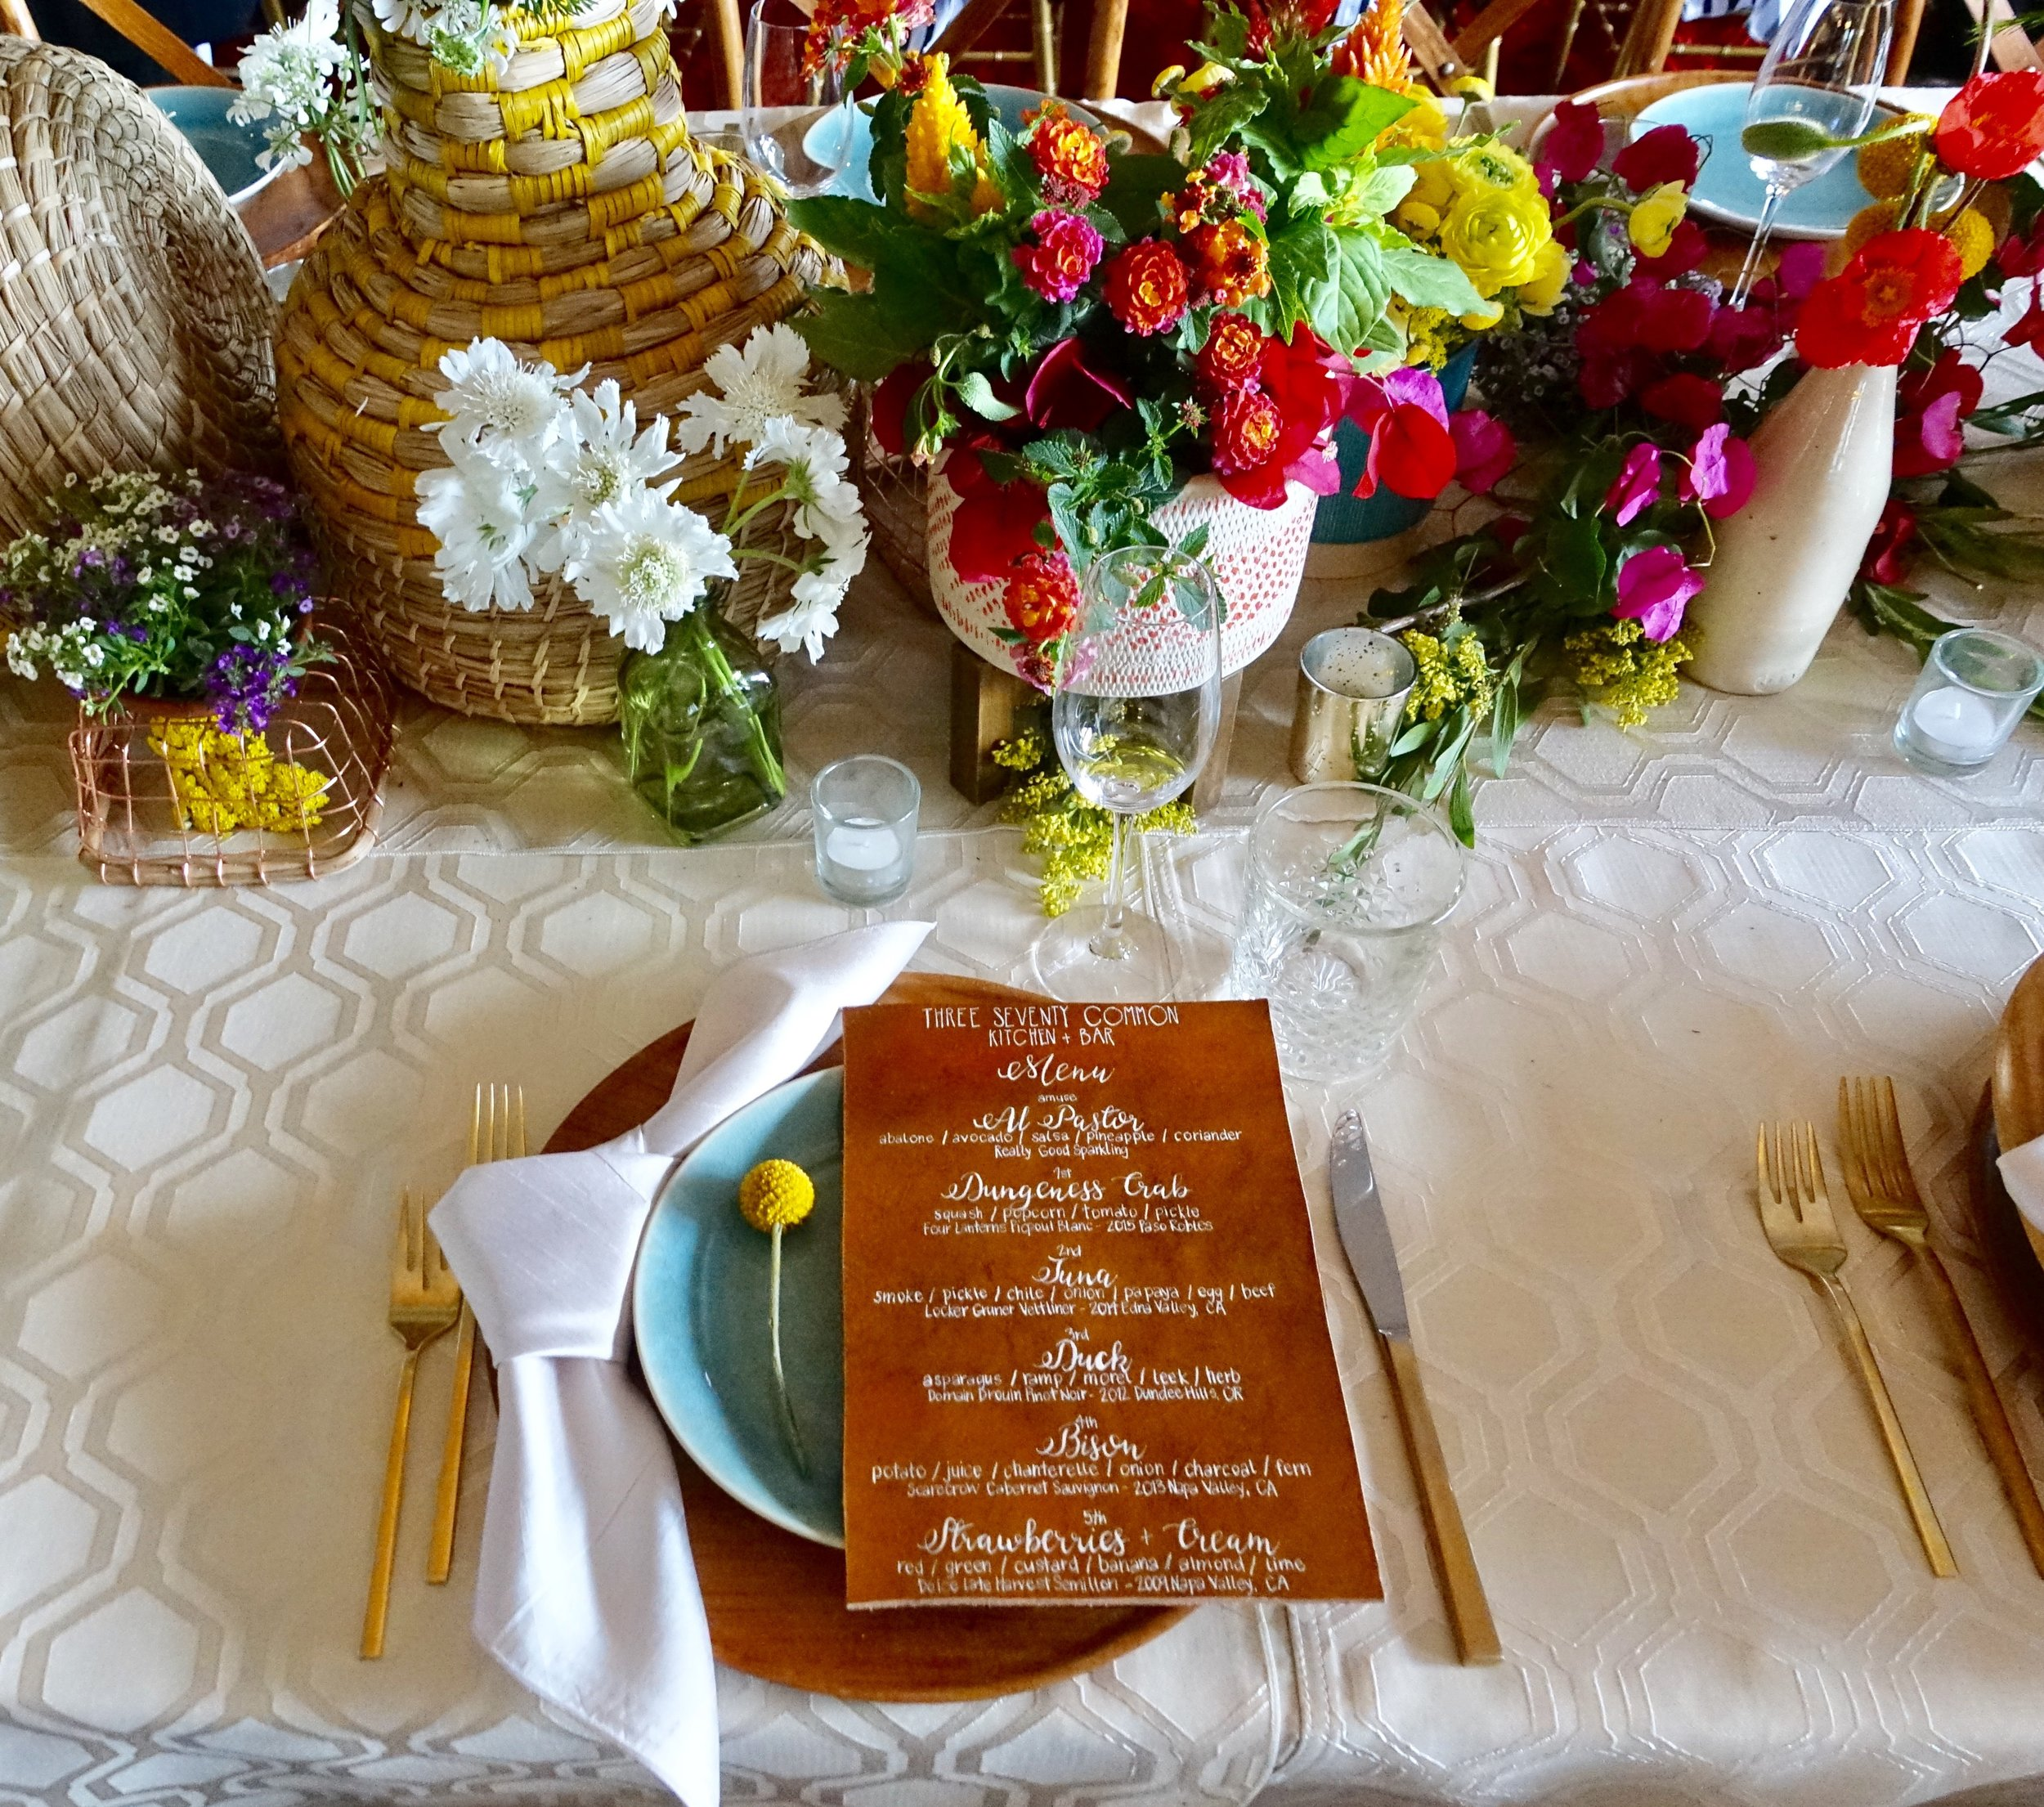 Orange-County-California-Vibrant-Bright-Colored-Boho-Super-Bloom-Leather-Caligraphy-Menu.jpg